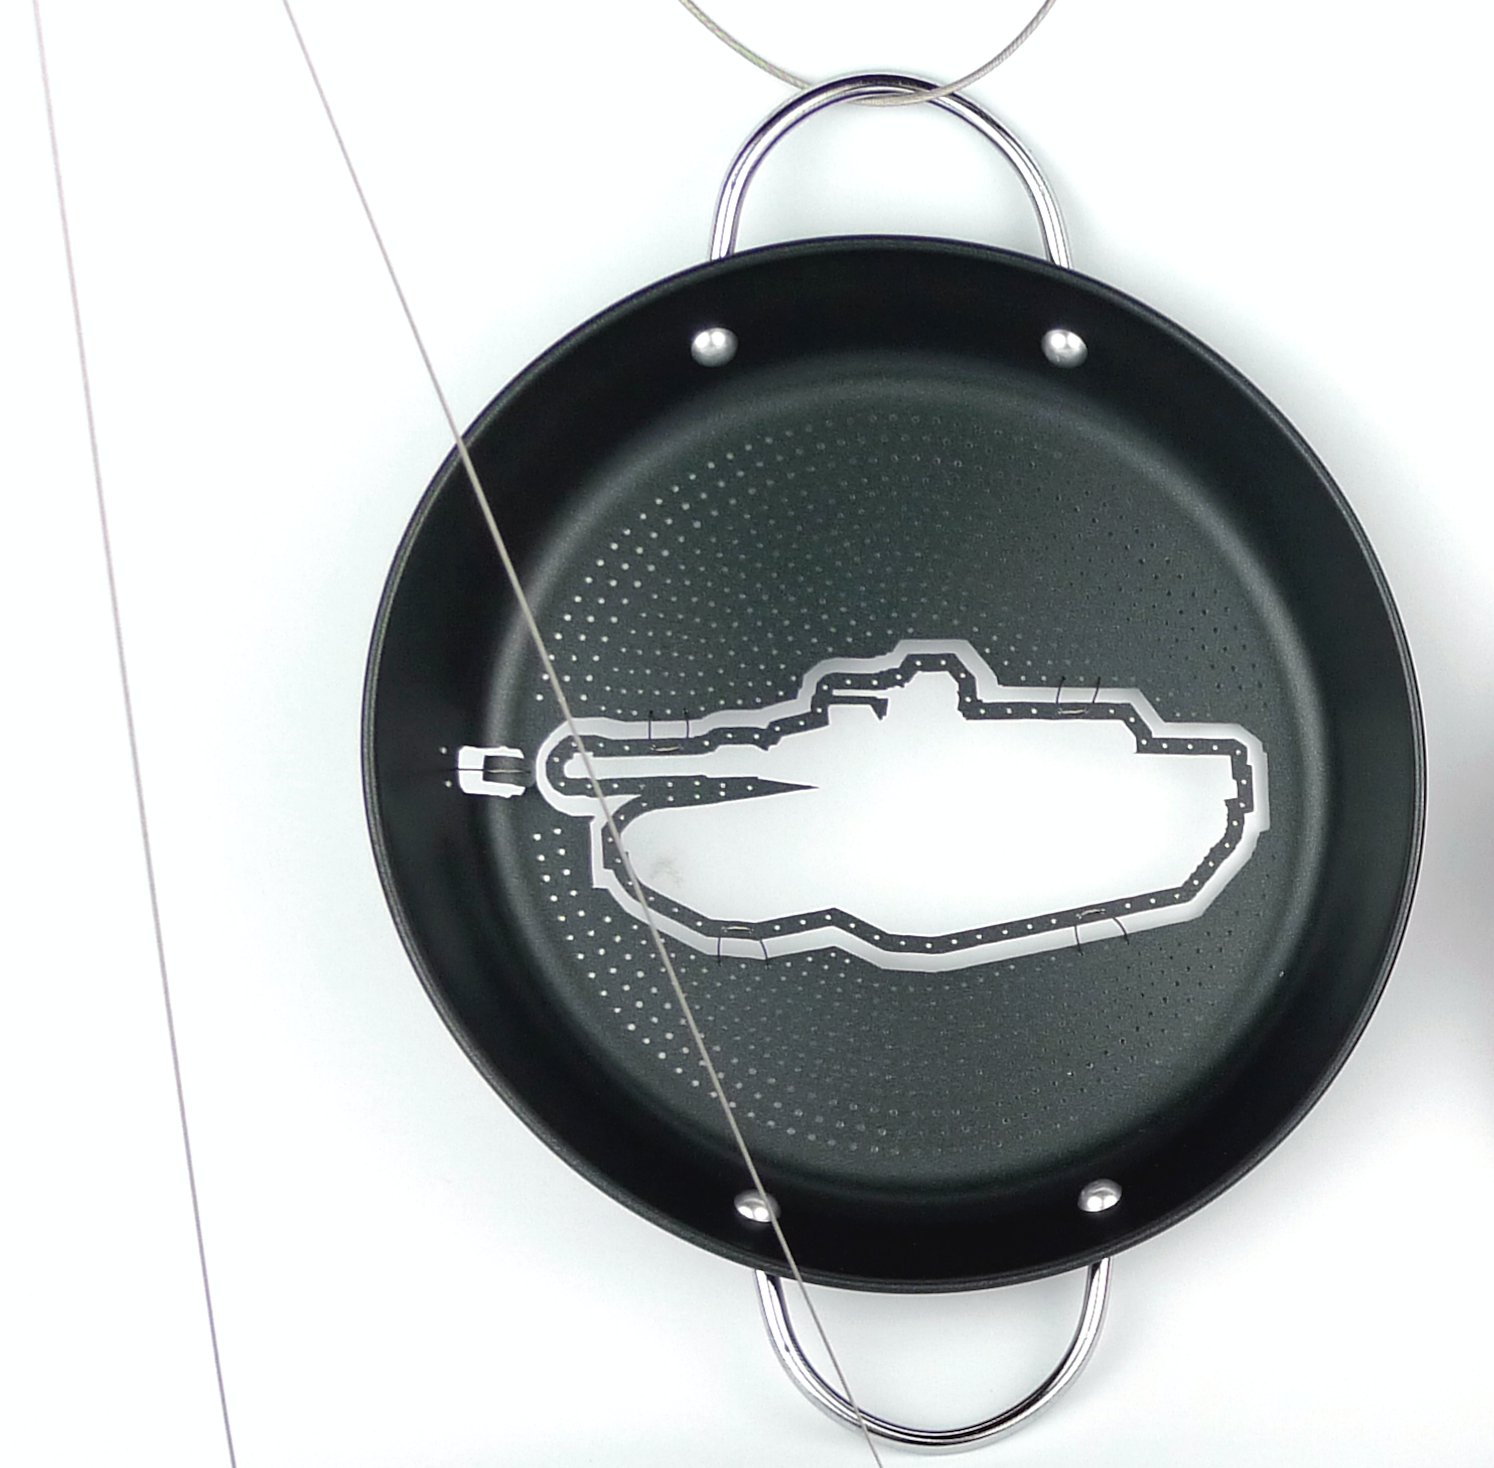 """M1 Abrams    Melissa Cameron, 2013  6"""" x 2 3/4"""" x 3/4"""" on 25"""" chain  Non-stick coated steel, stainless steel cable, silver solder"""